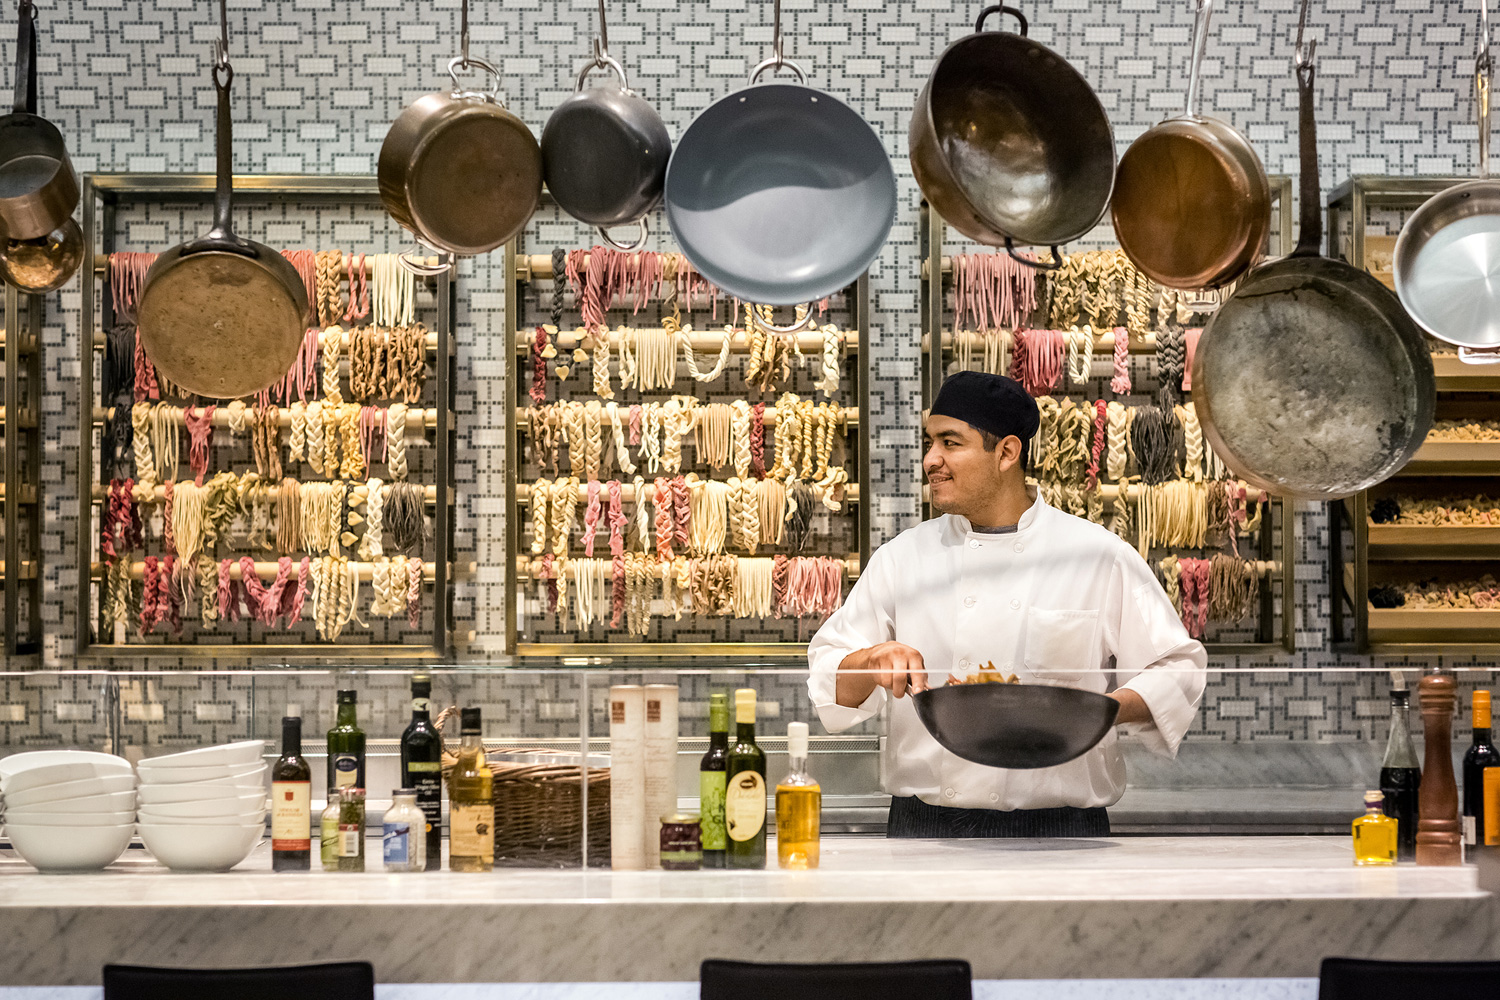 The Todd English Food Hall Restauarnts In New York